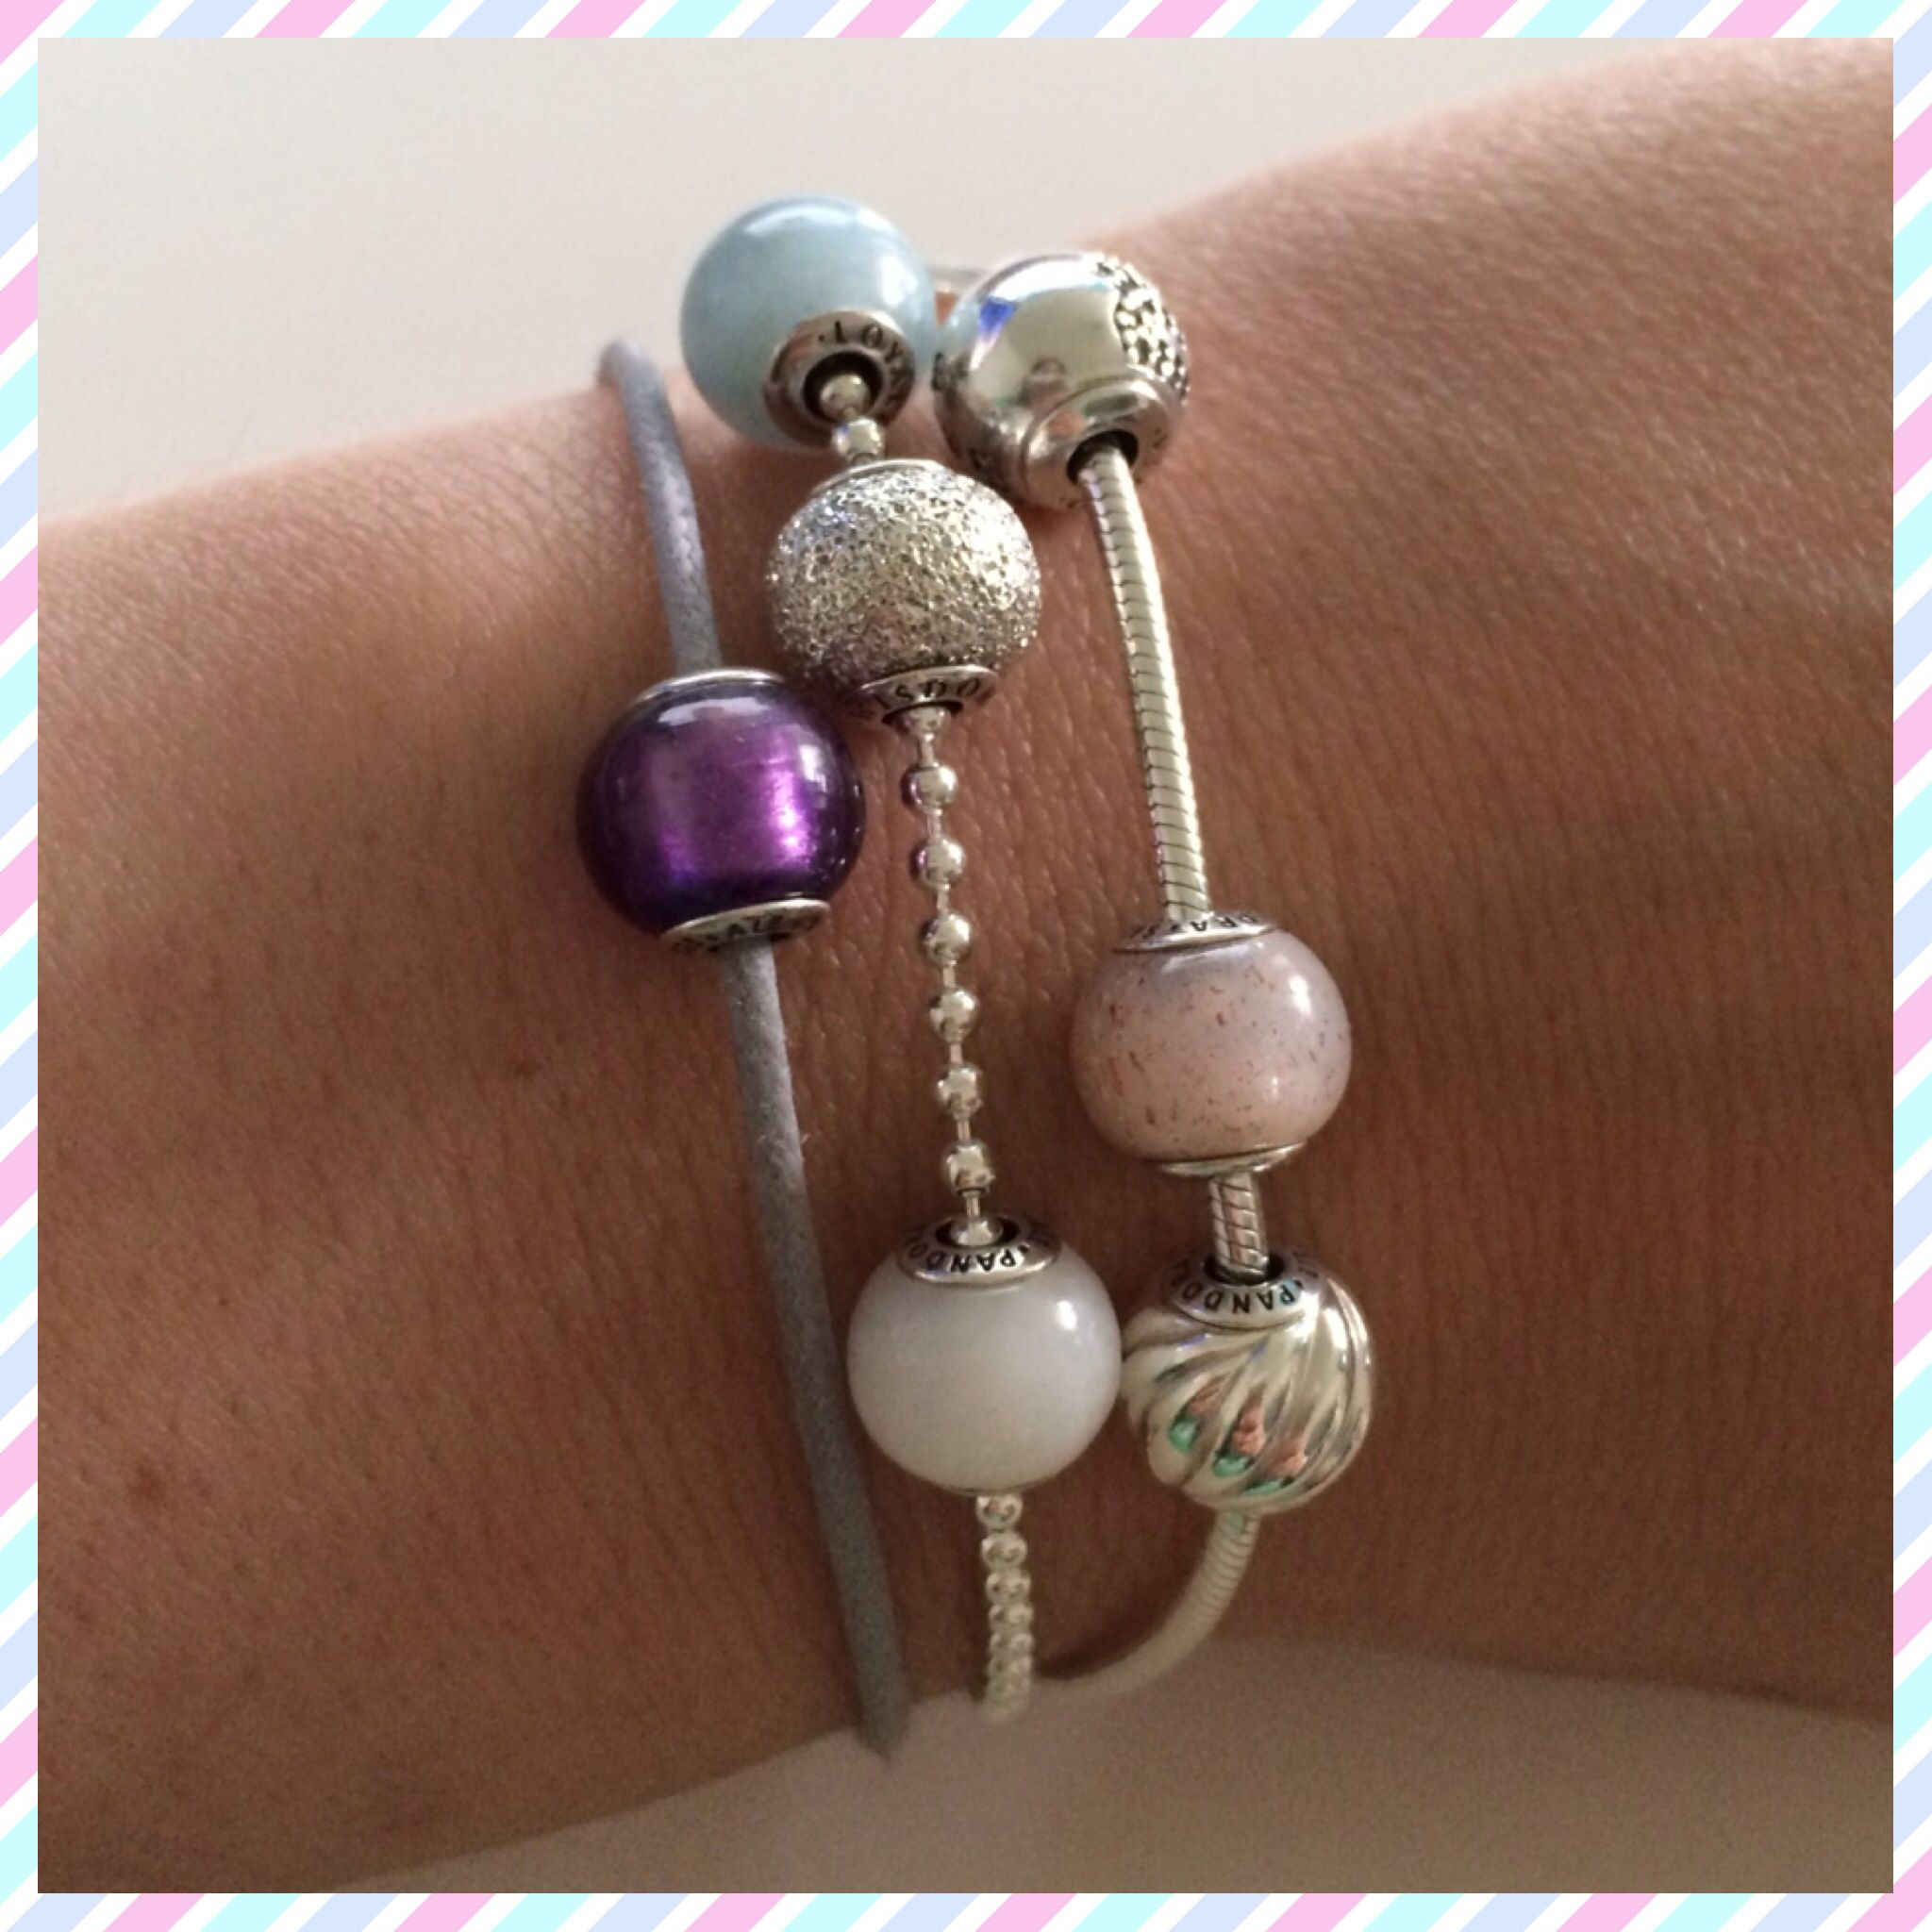 a1741b2b9 New fabric bracelet with Faith charm by Pandora Essence ... In love!  www.morethanwords.com 1-901-755-4388